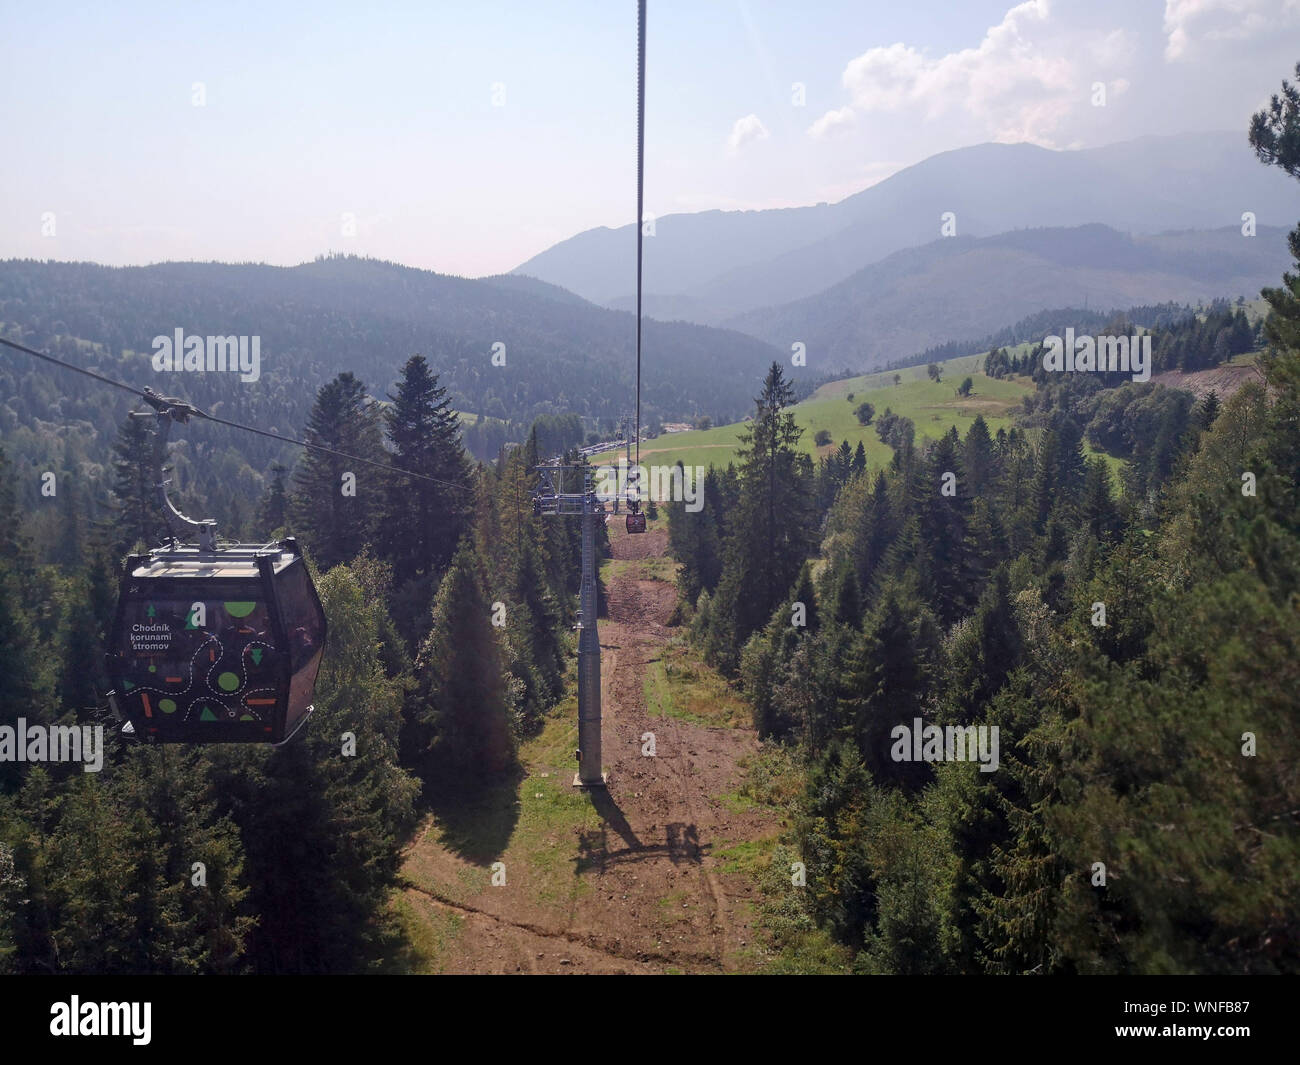 Ski lifts in the summer time in the Tatra Mountains, Slovakia. September 2019. Stock Photo